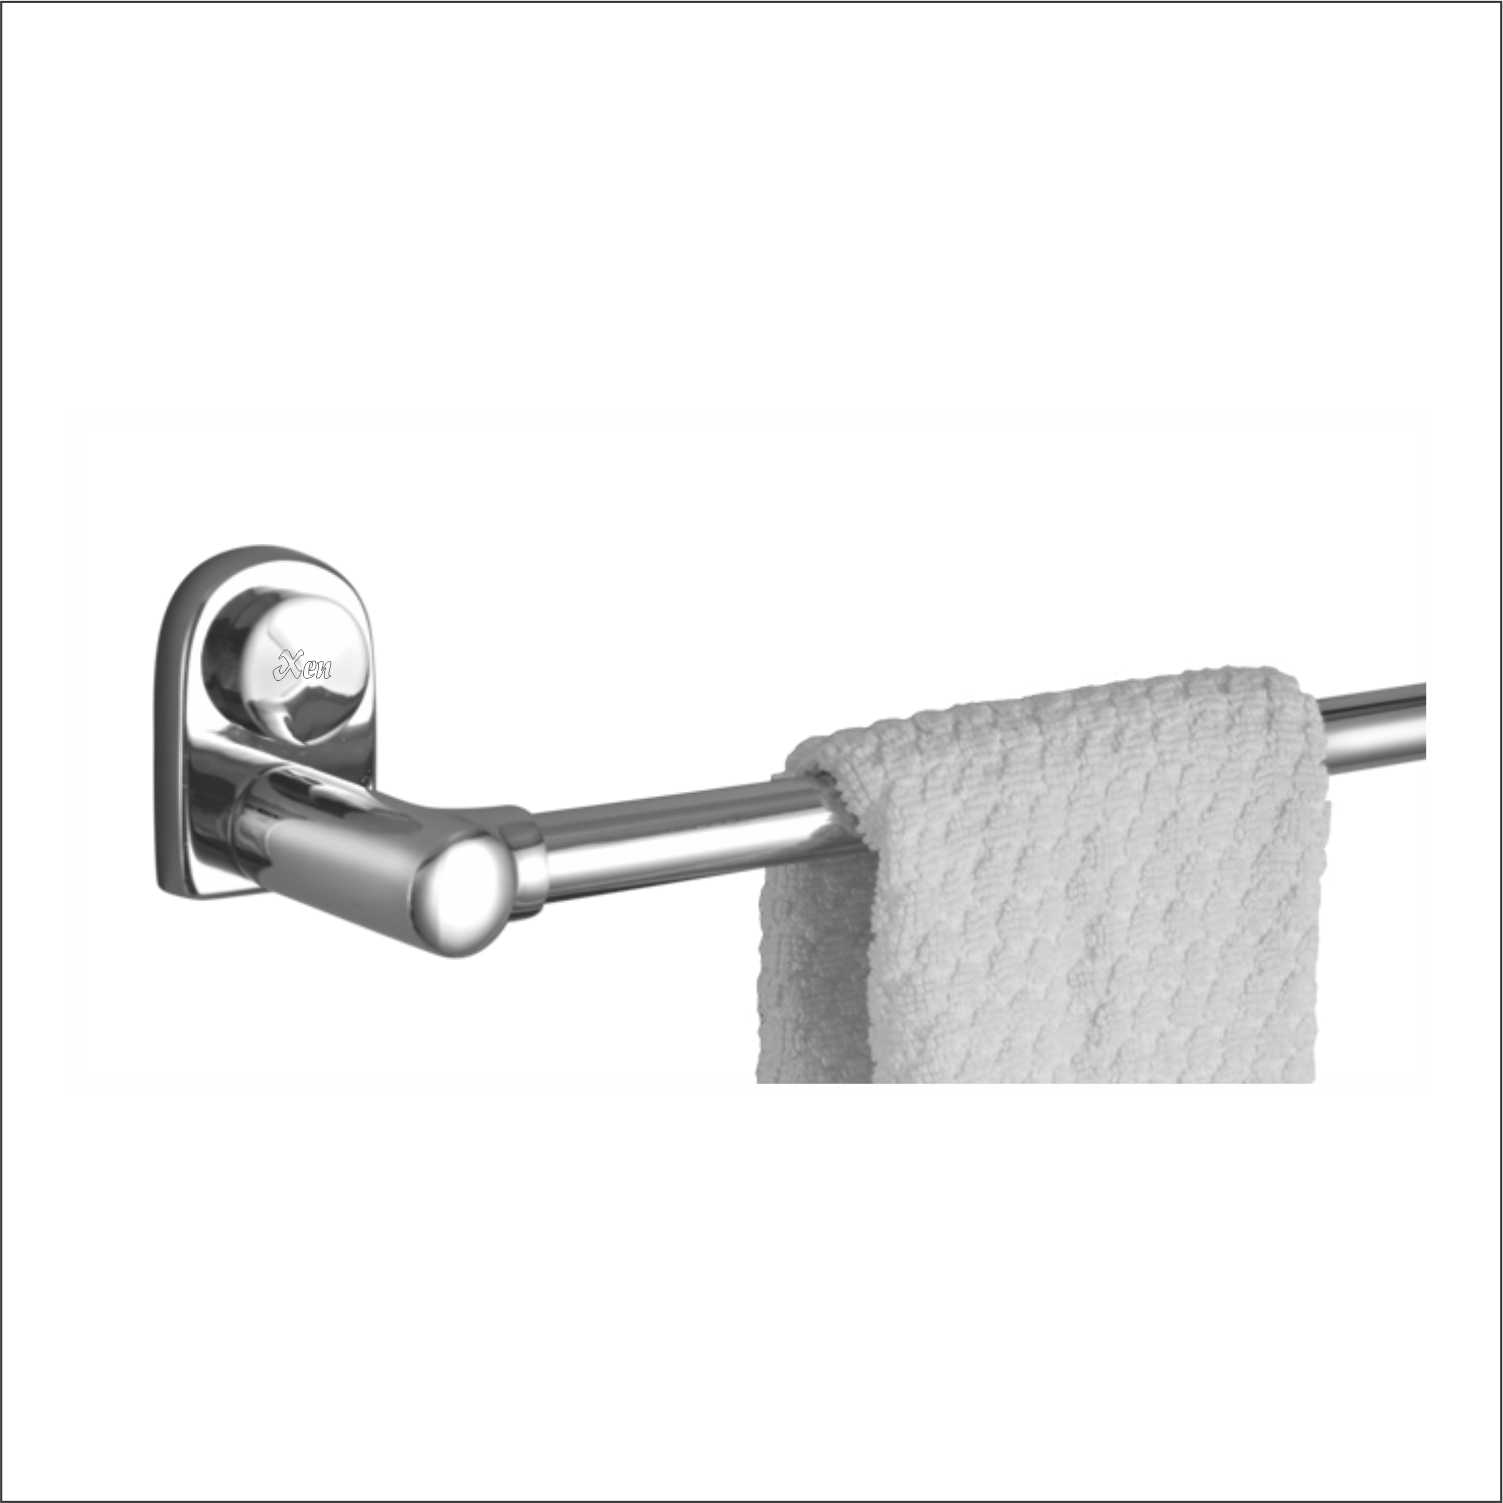 Towel rod